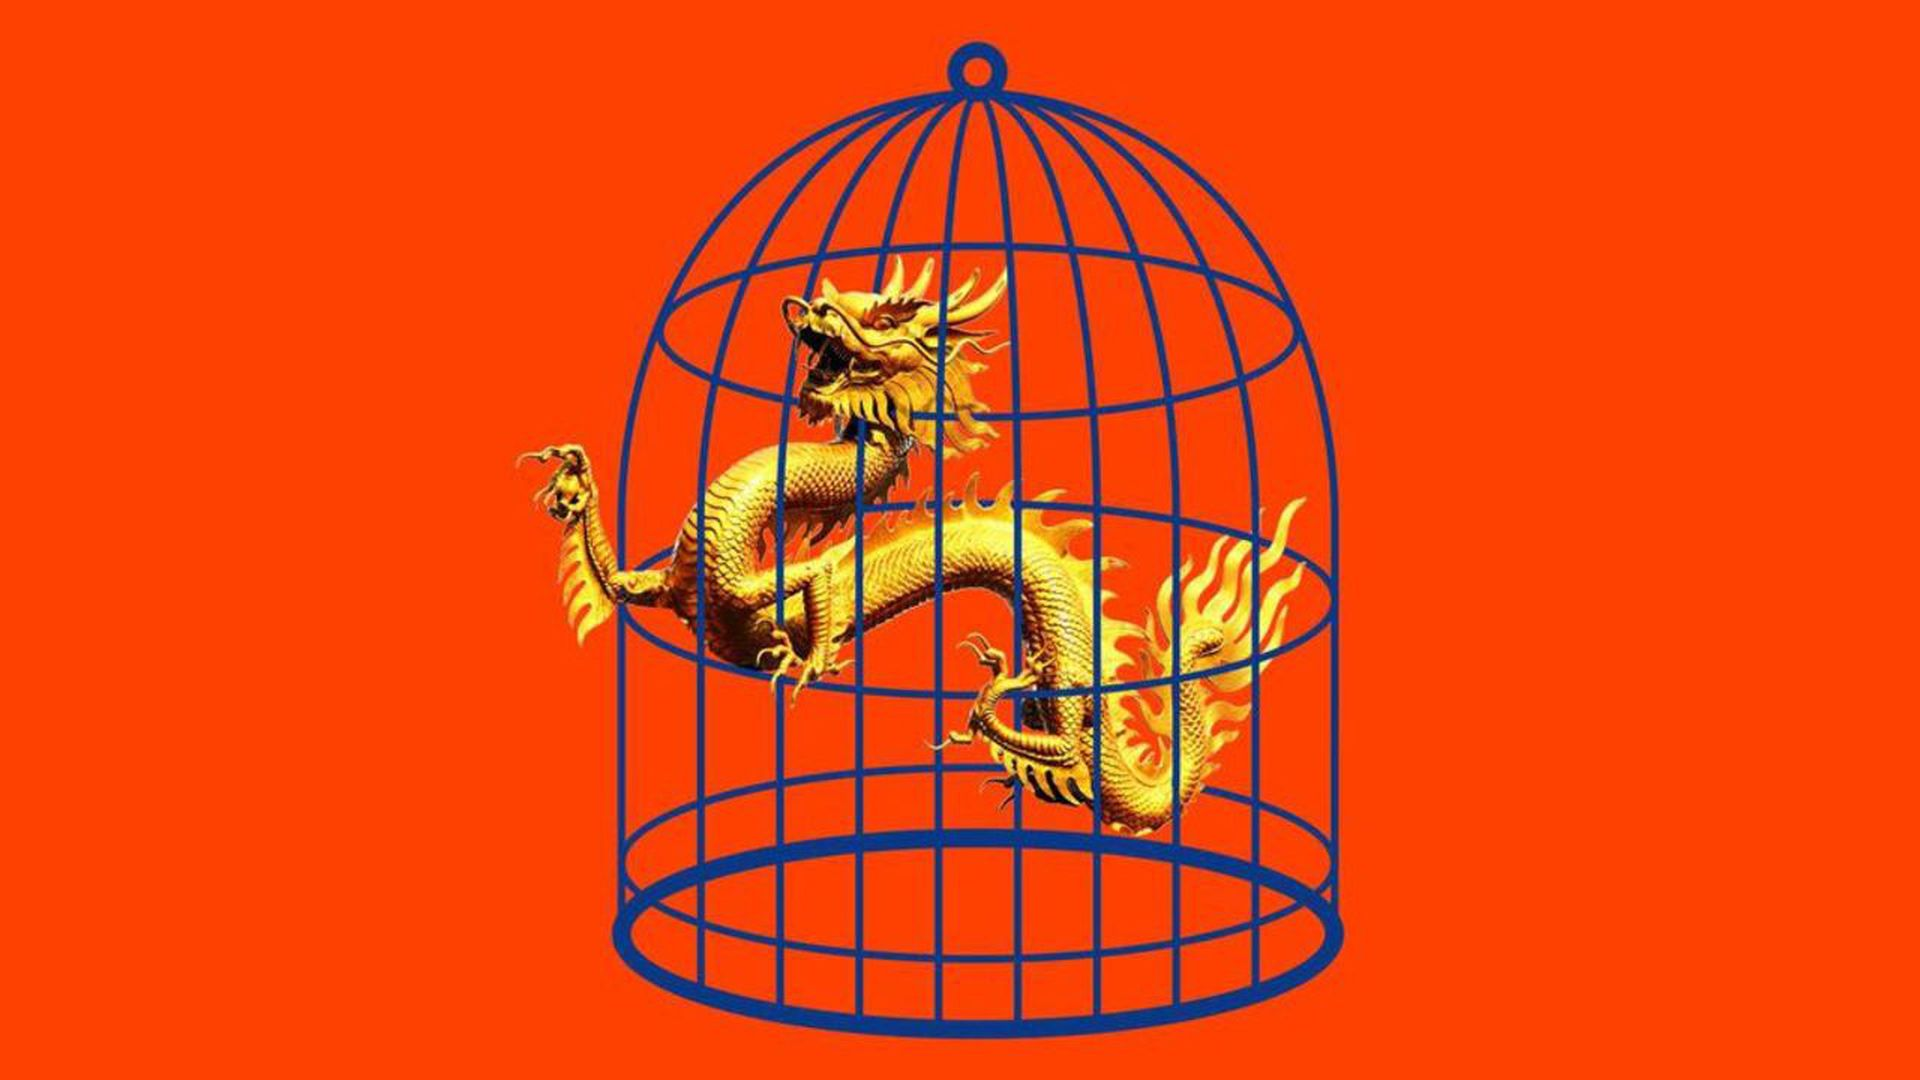 Illustration of a chinese dragon in a bird cage